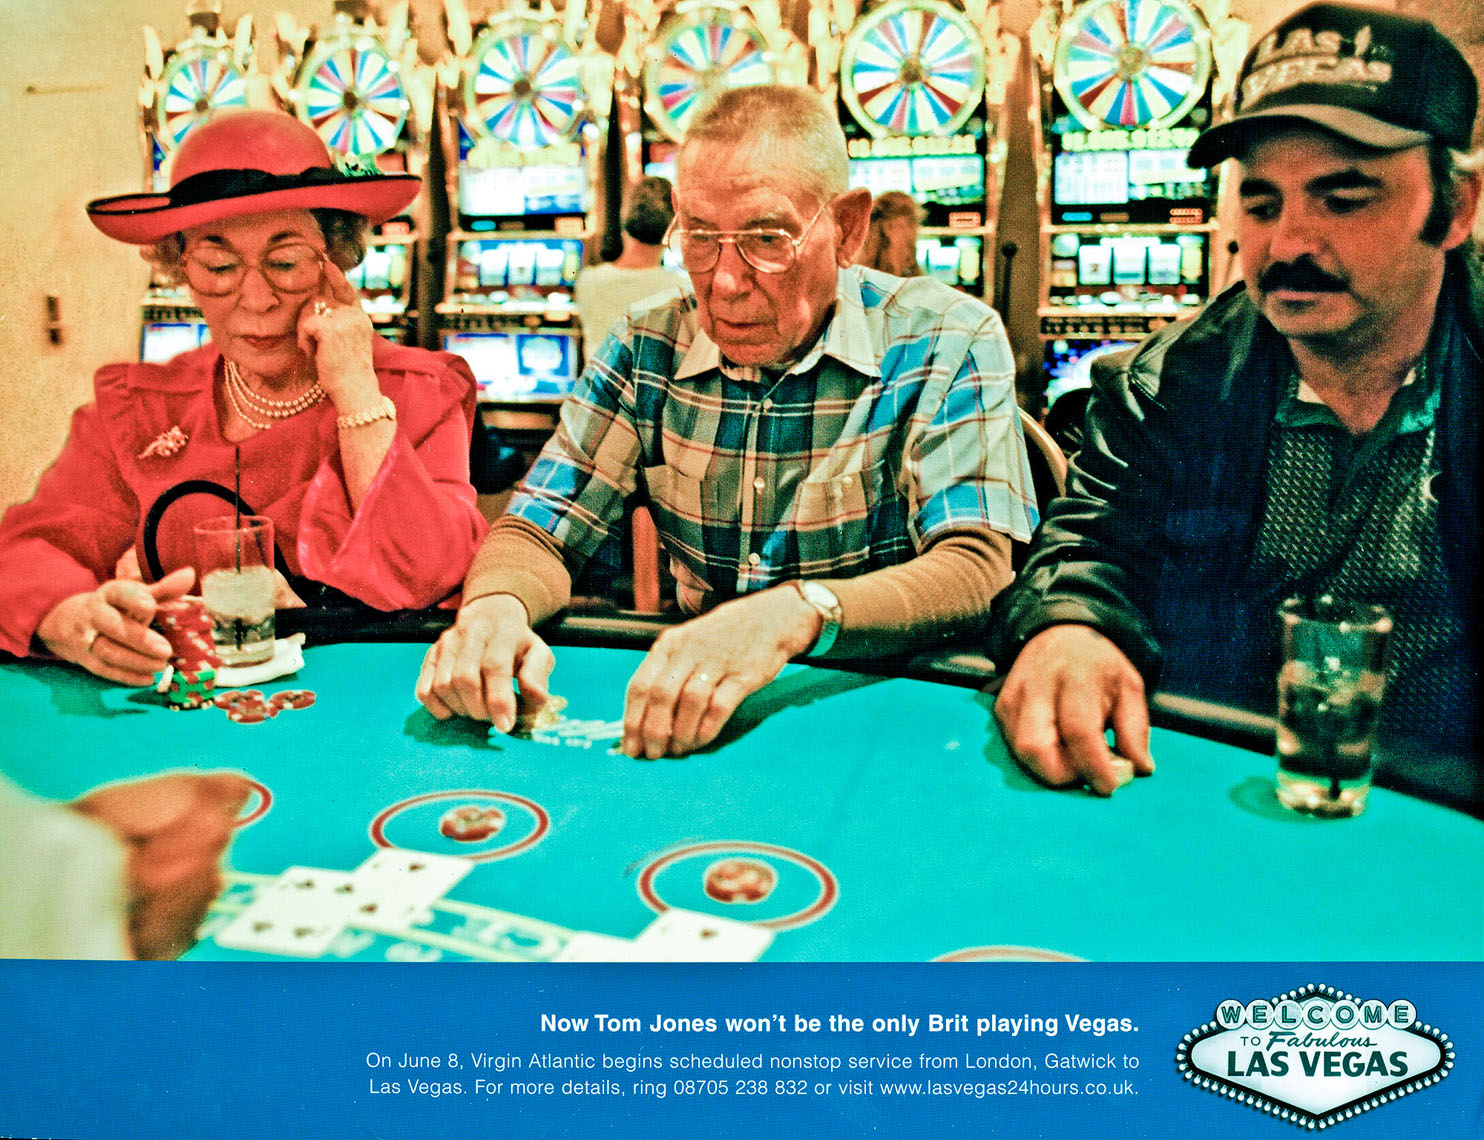 1073Ad for Virgin Atlantic %22 nonstops to Las Vegas %22  Queen in casino, agency- R & R Partners